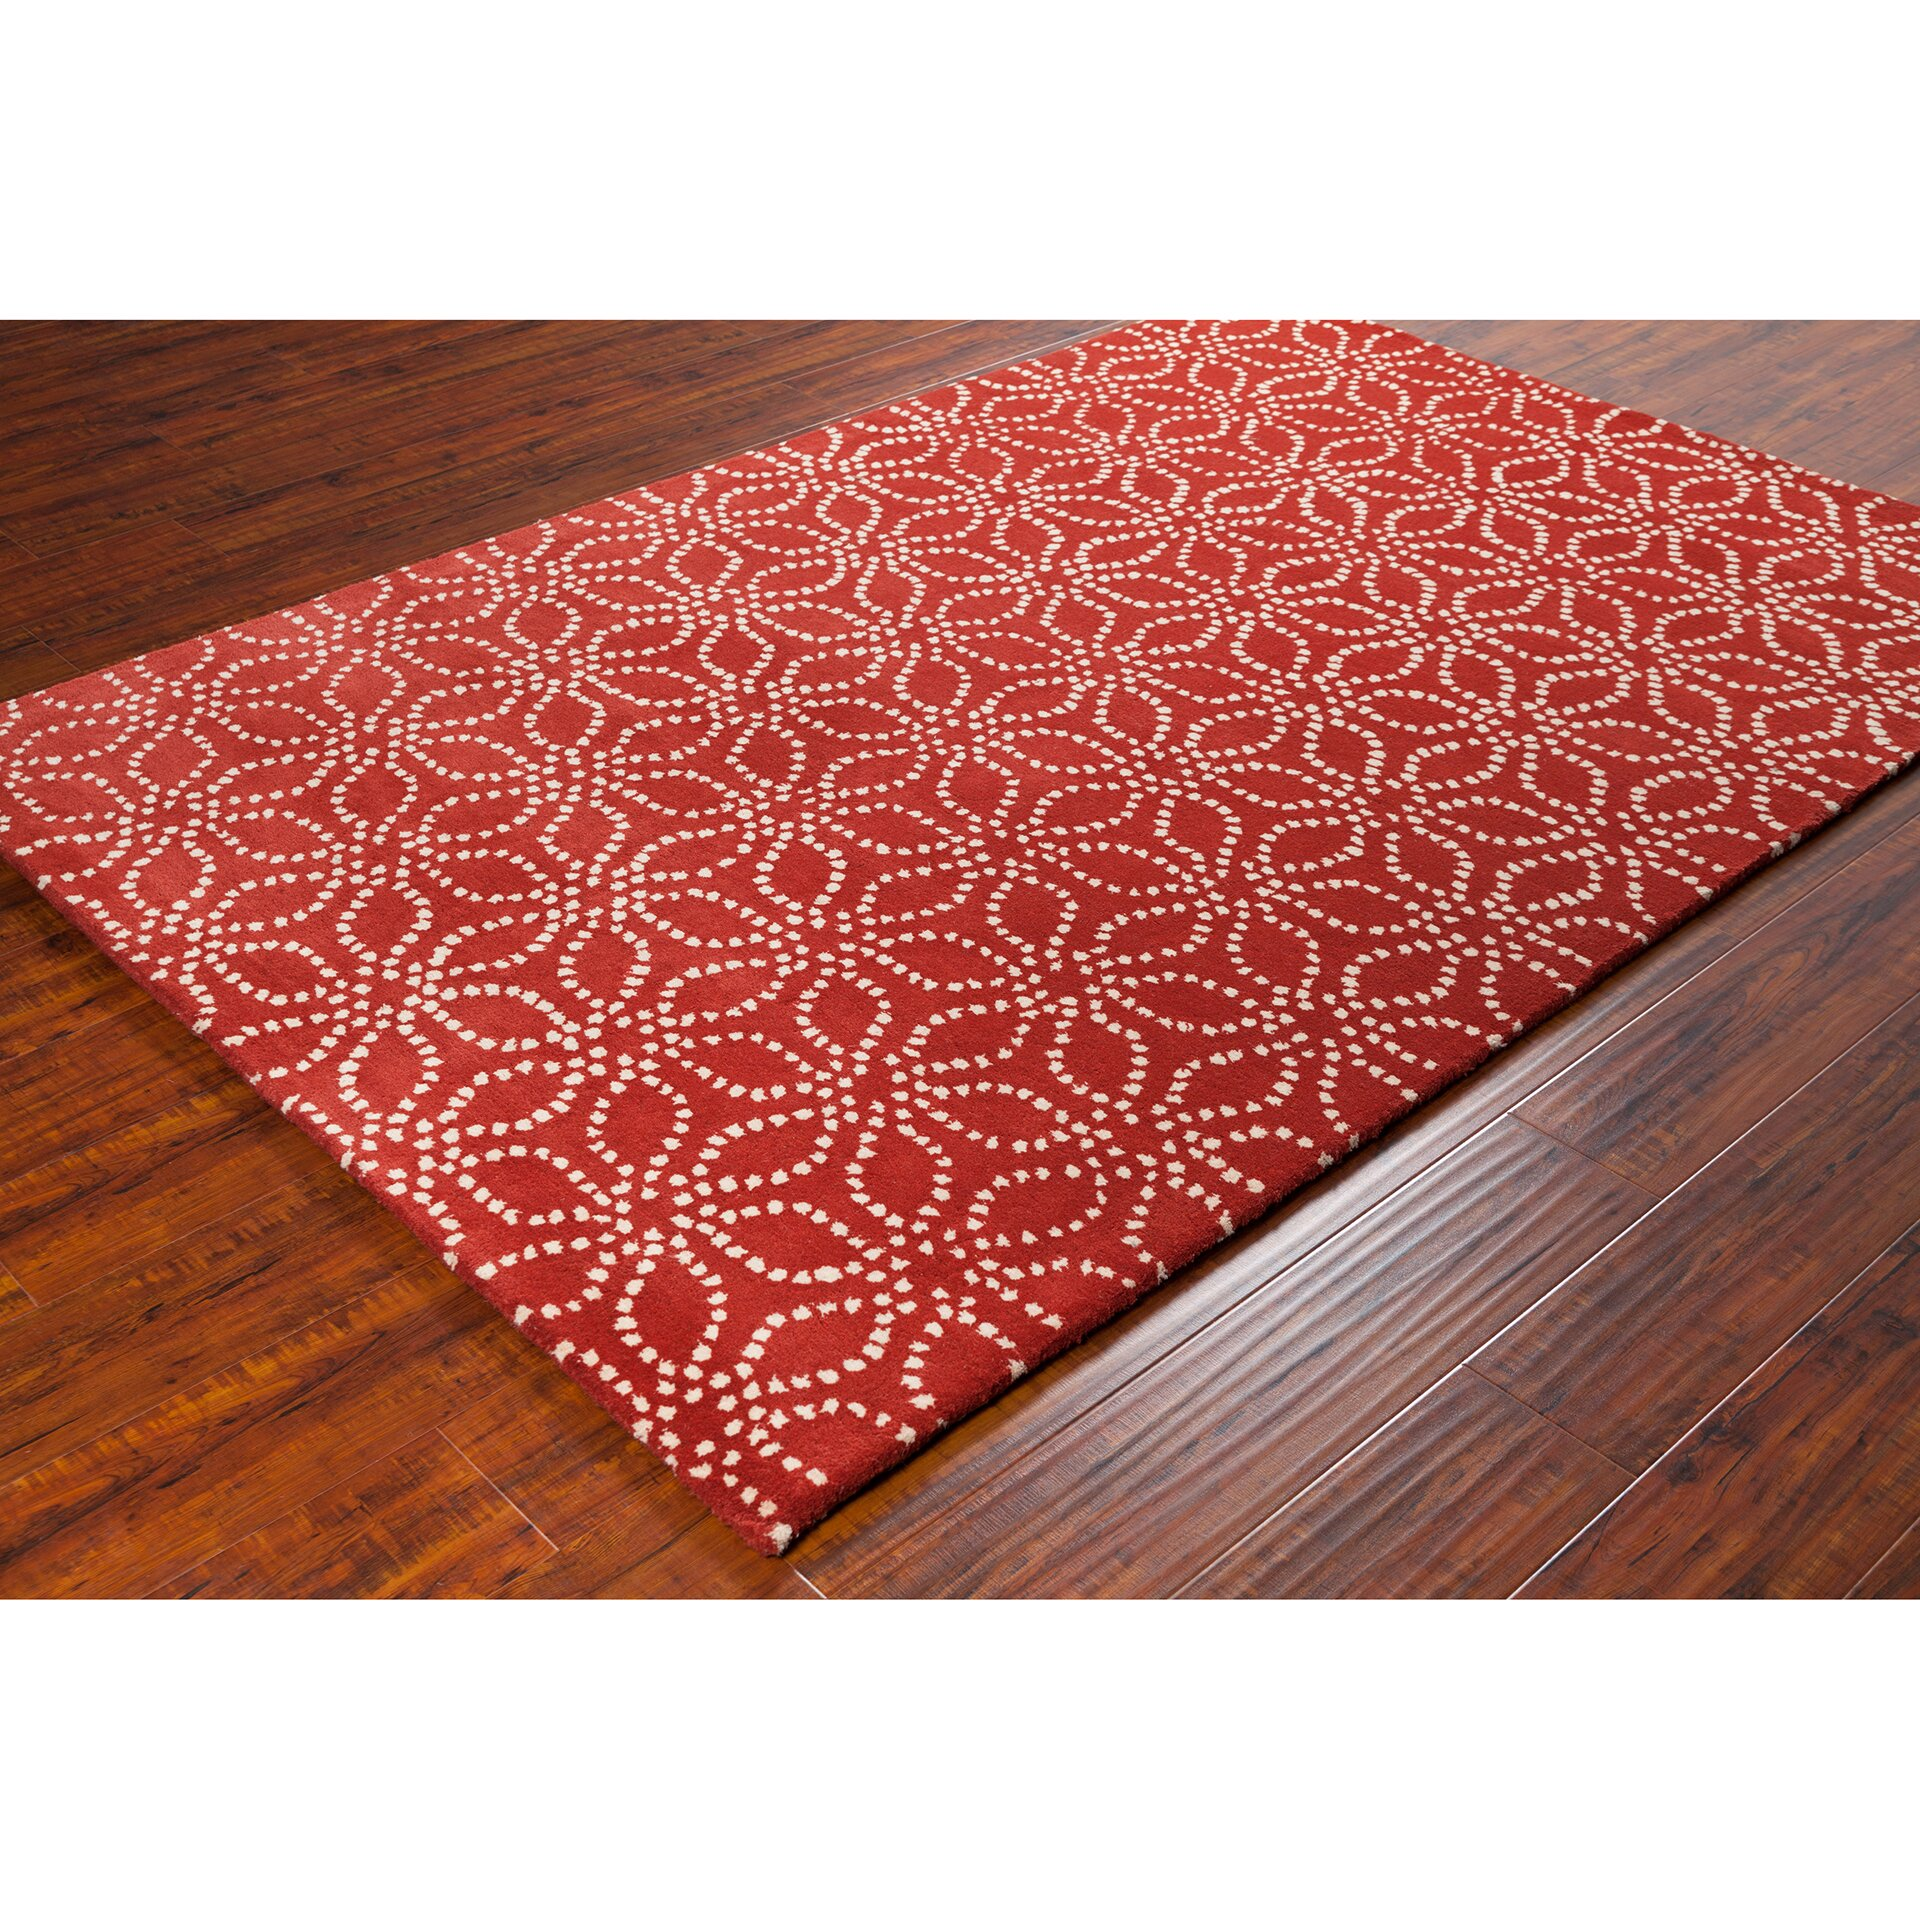 Chandra Stella Patterned Contemporary Wool Red White Area